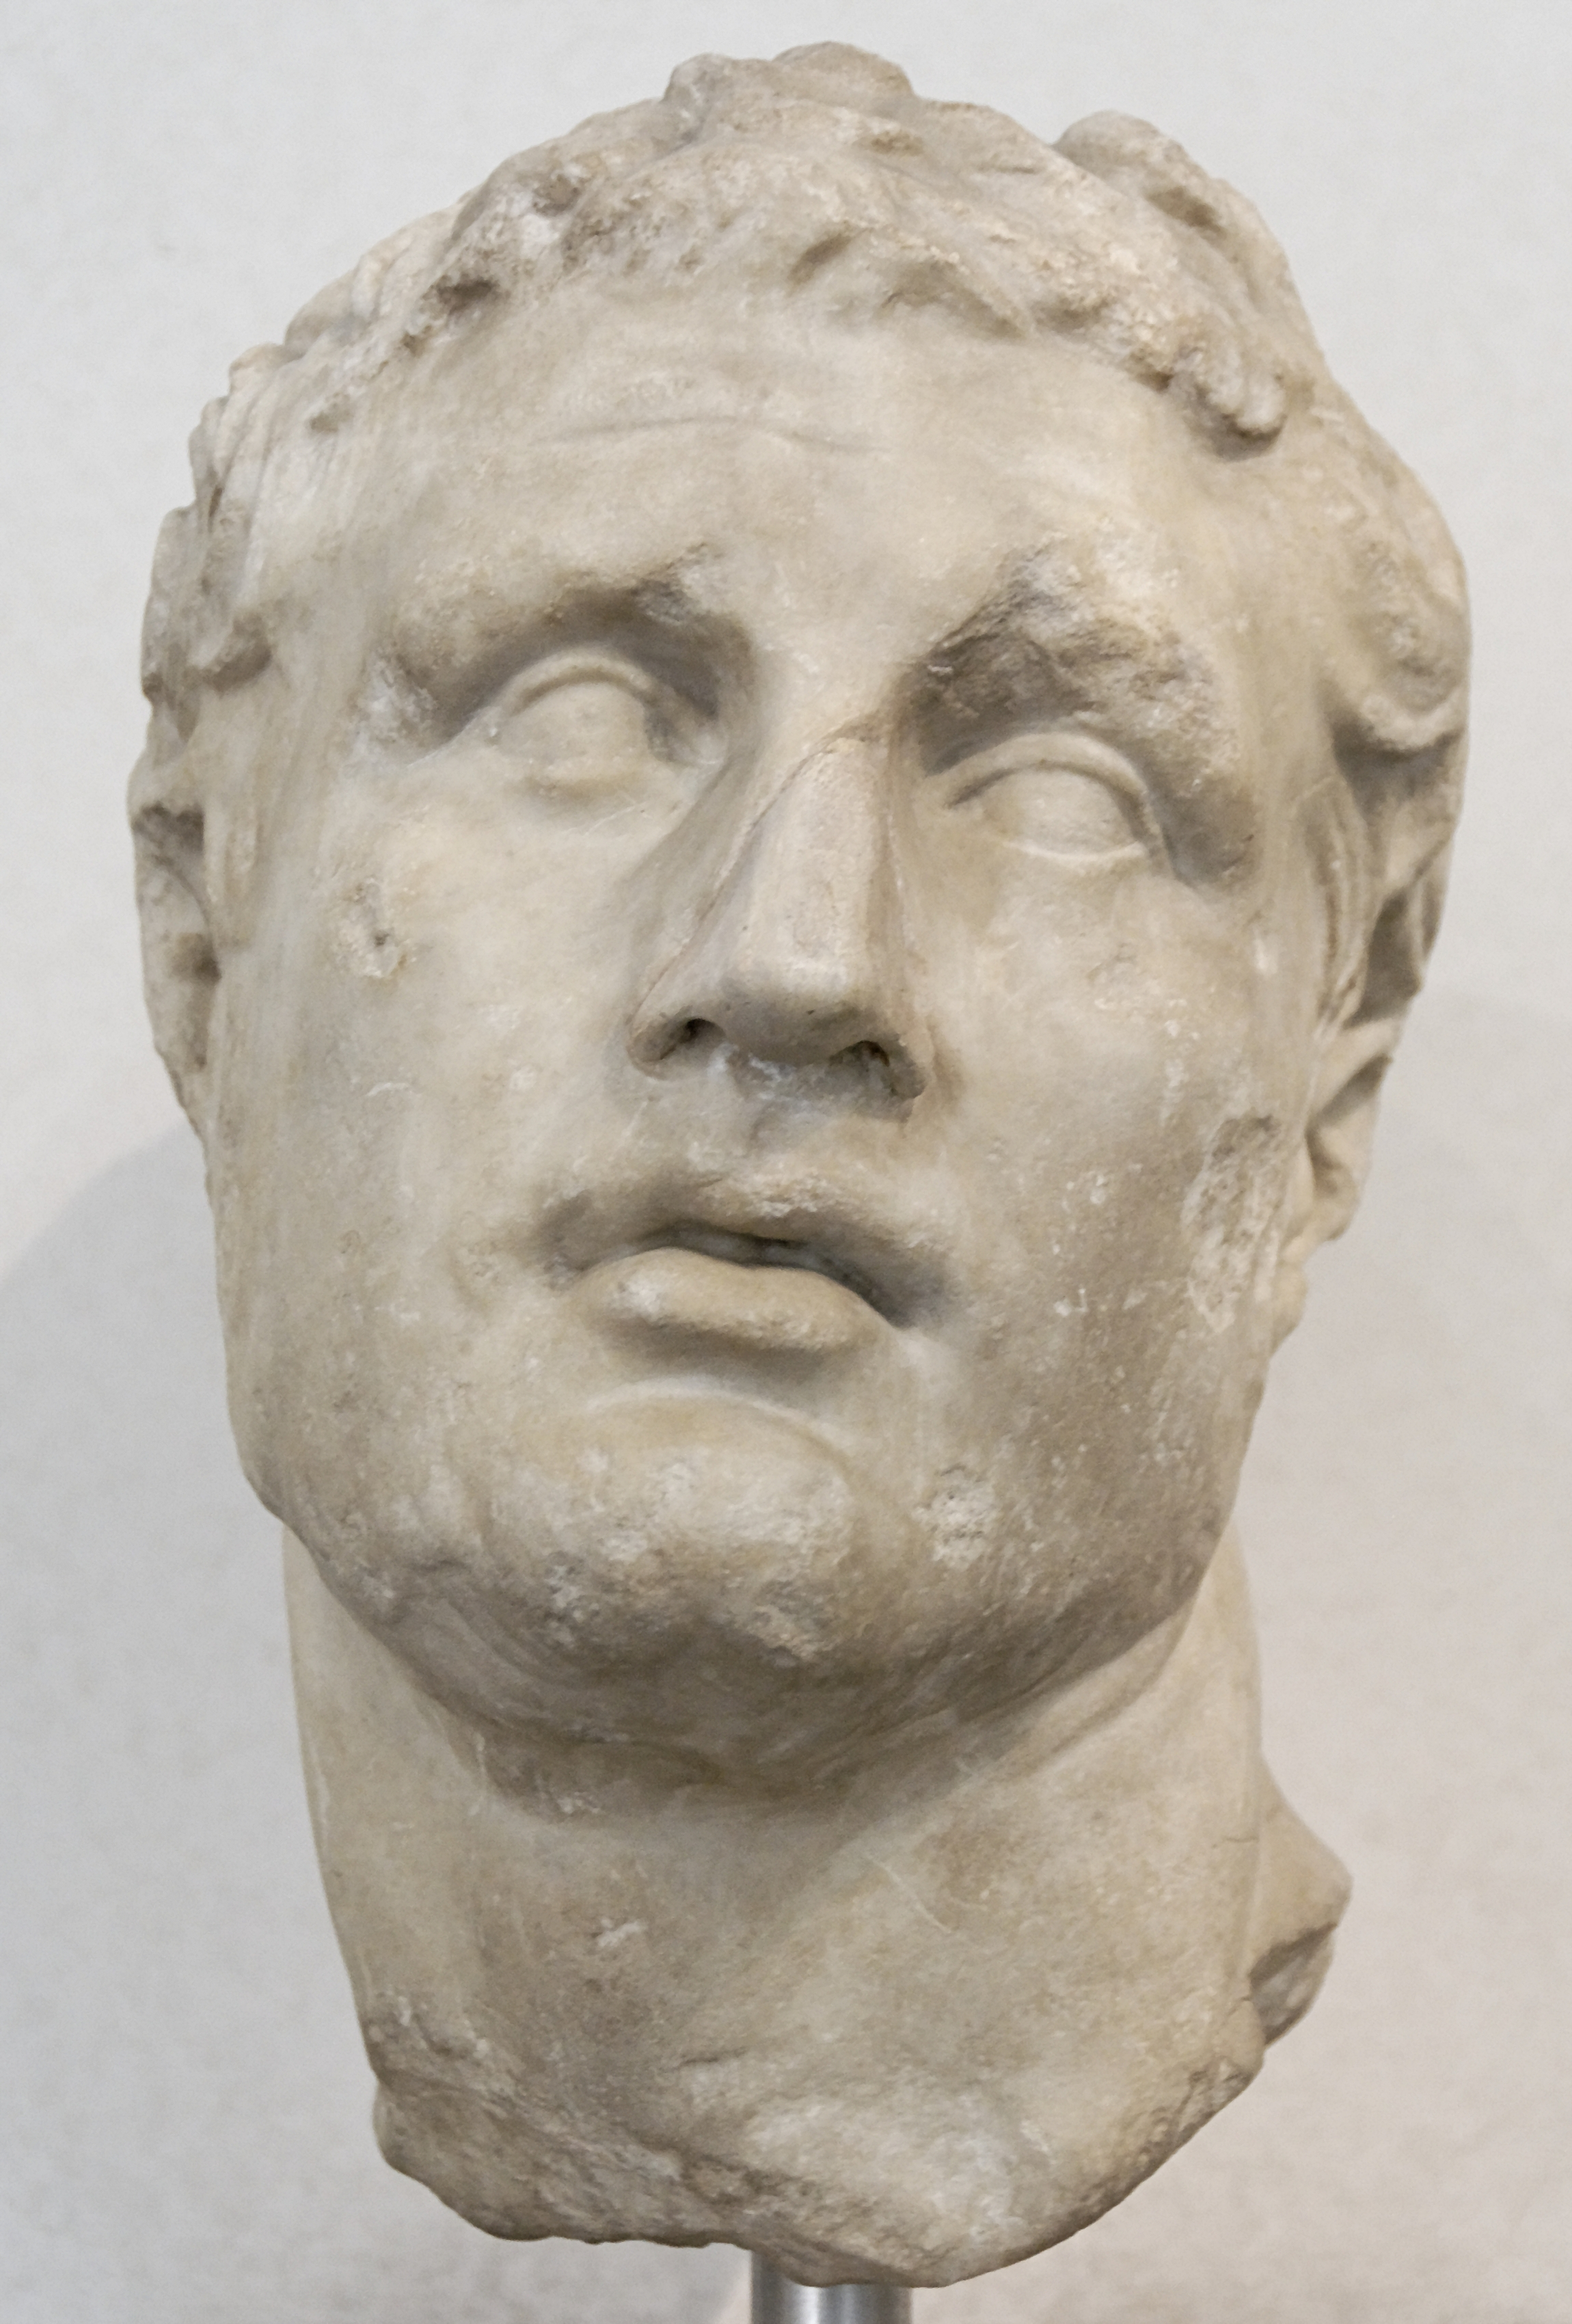 http://upload.wikimedia.org/wikipedia/commons/b/b9/Portrait_Seleucid_Prince_Massimo.jpg